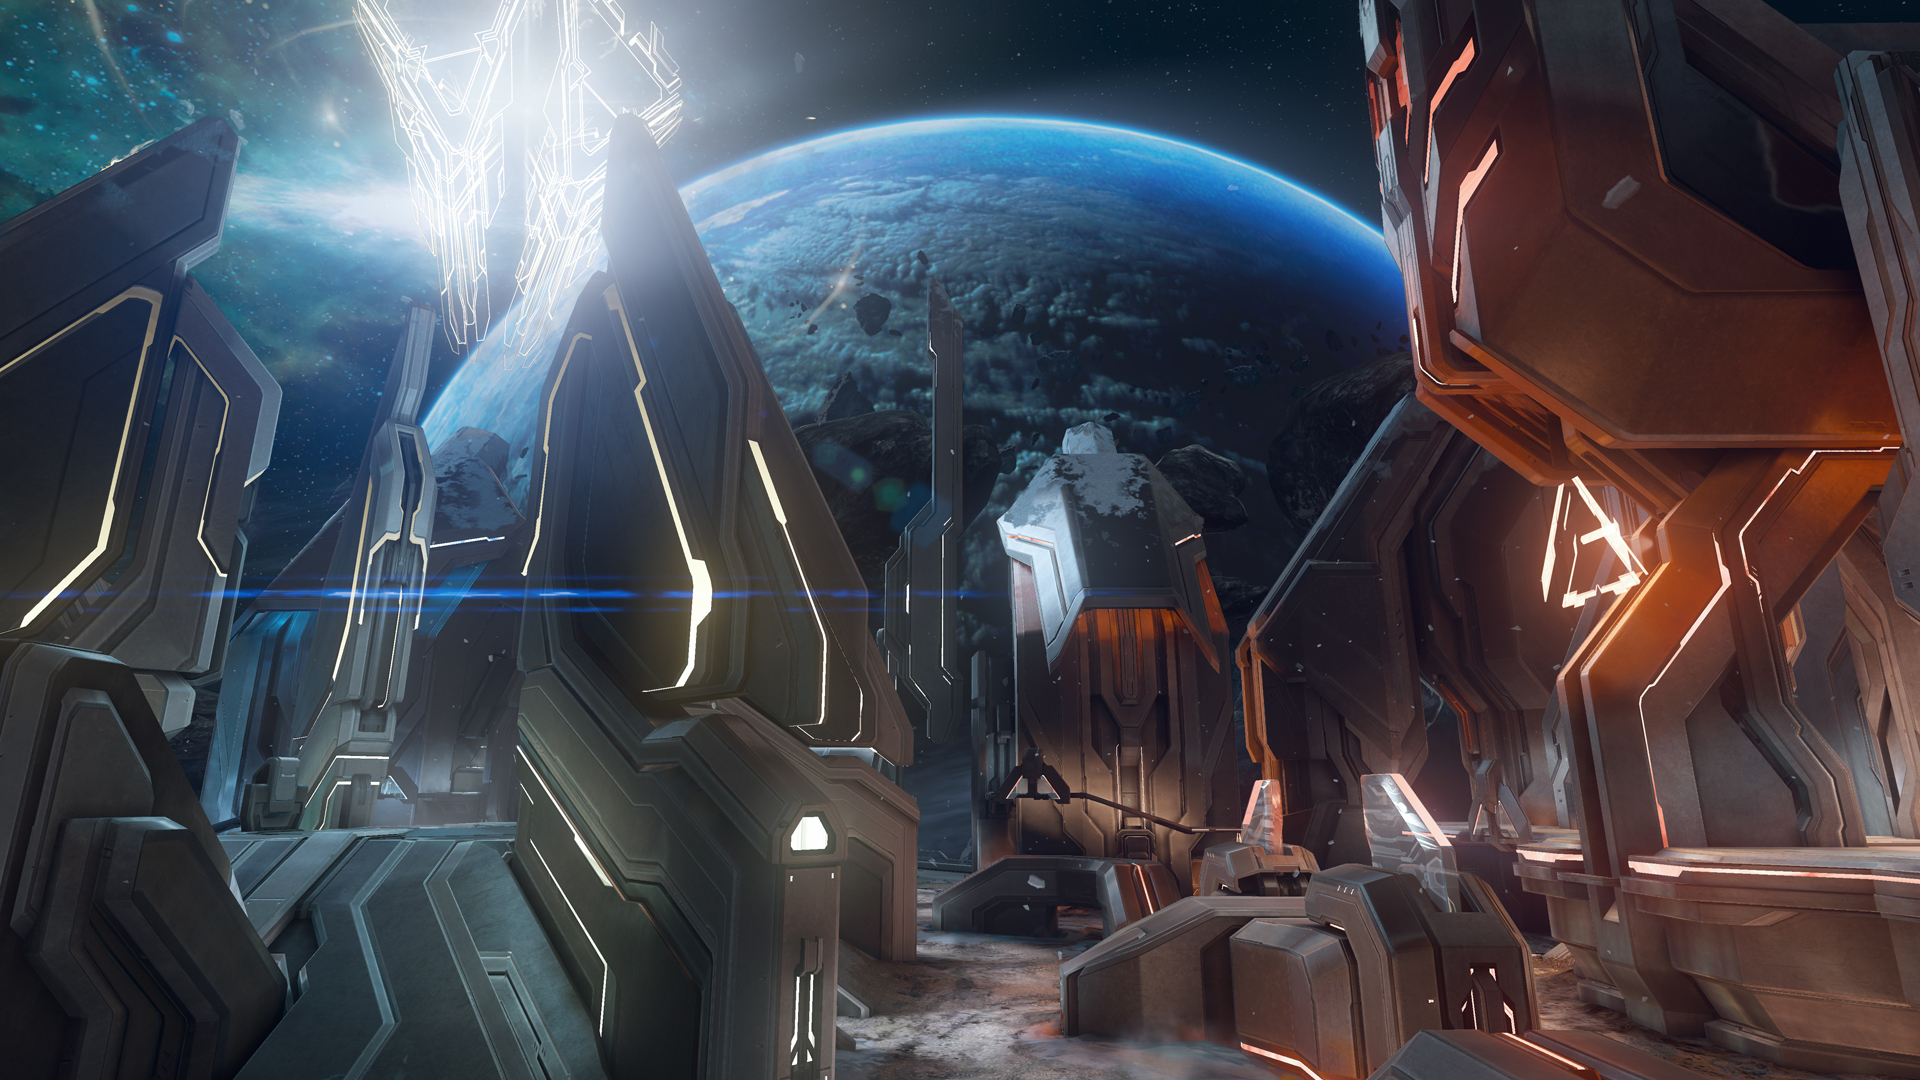 Halo Skybox Comparison Halo 5 Guardians Forums Halo